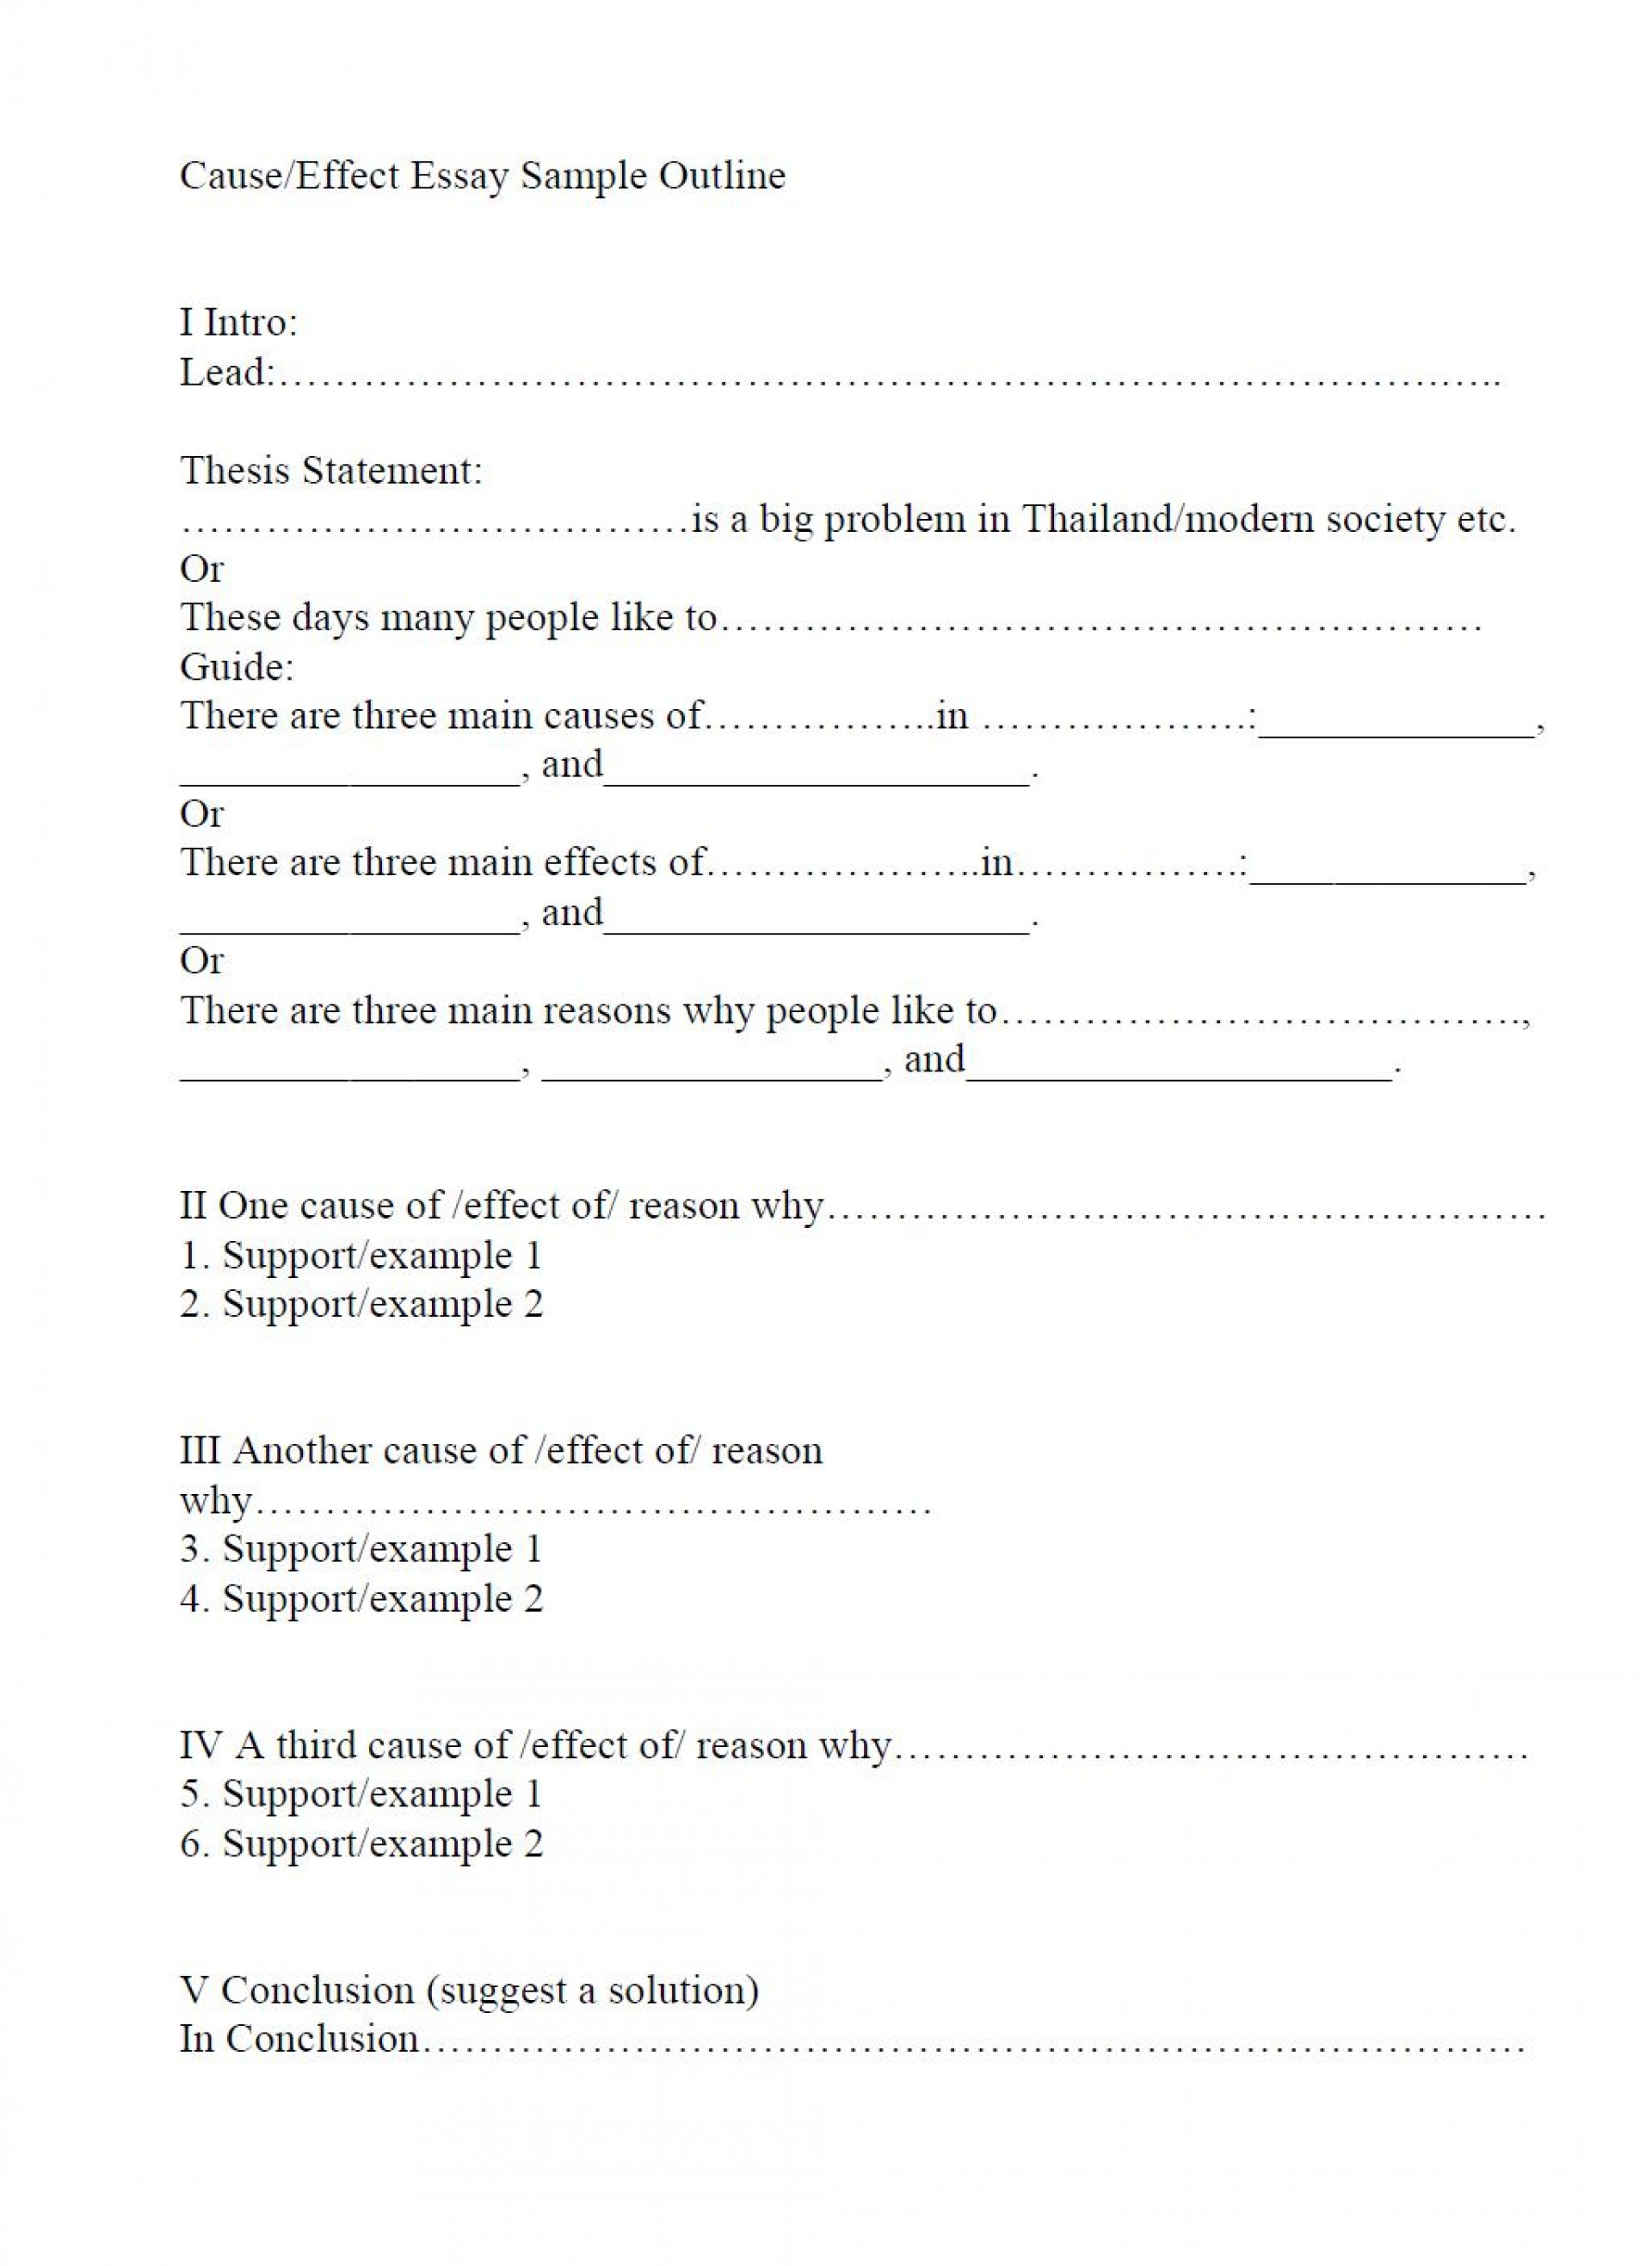 019 Outline And Essay Cause Effect Sample Impressive Template For Compare Contrast Printable 1920